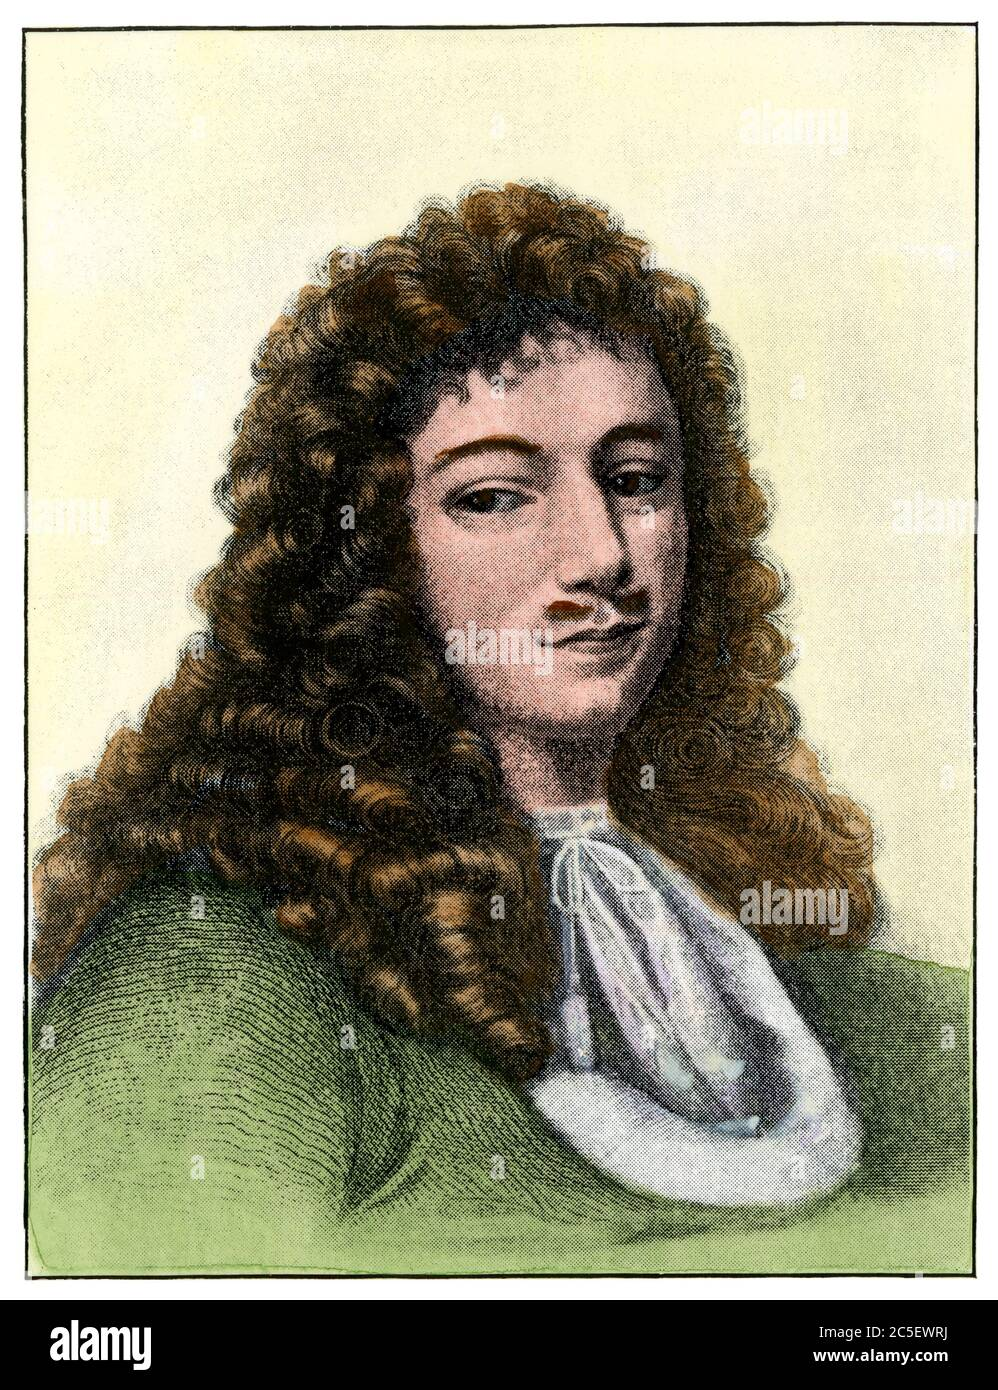 Jean Baptiste Talon, administrator of New France. Hand-colored halftone of an illustration Stock Photo